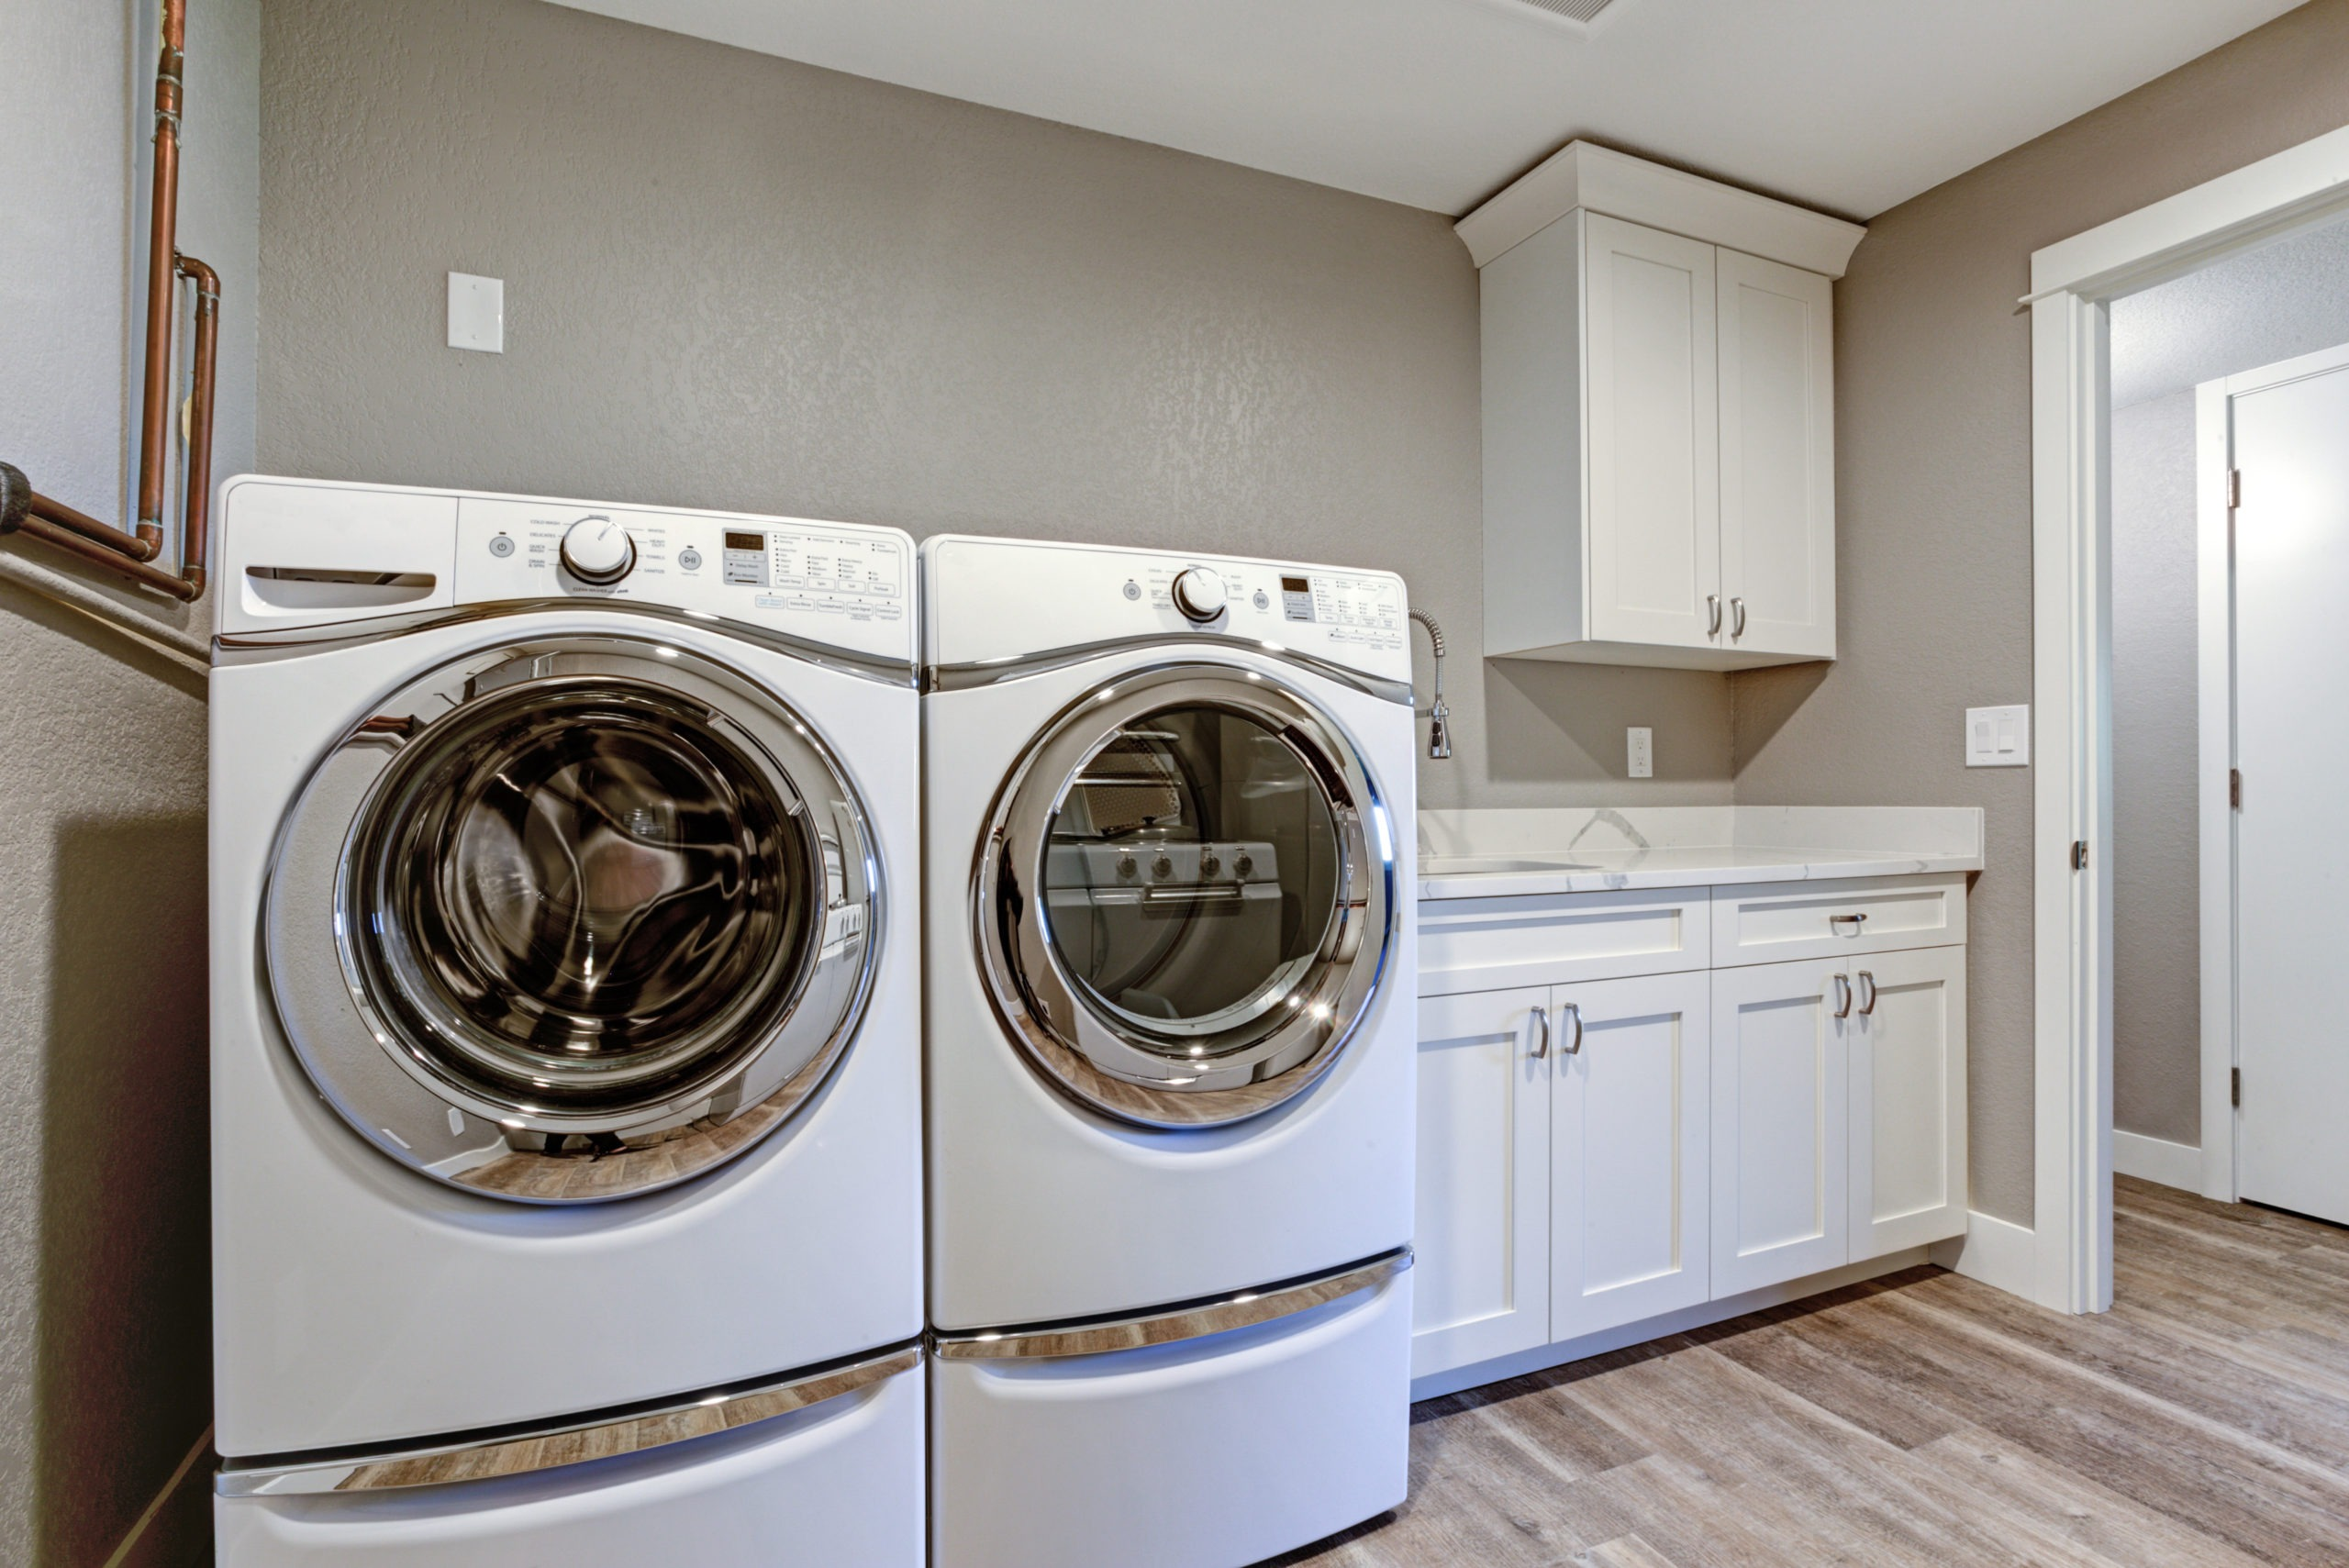 Laundry room with taupe walls and modern appliances.